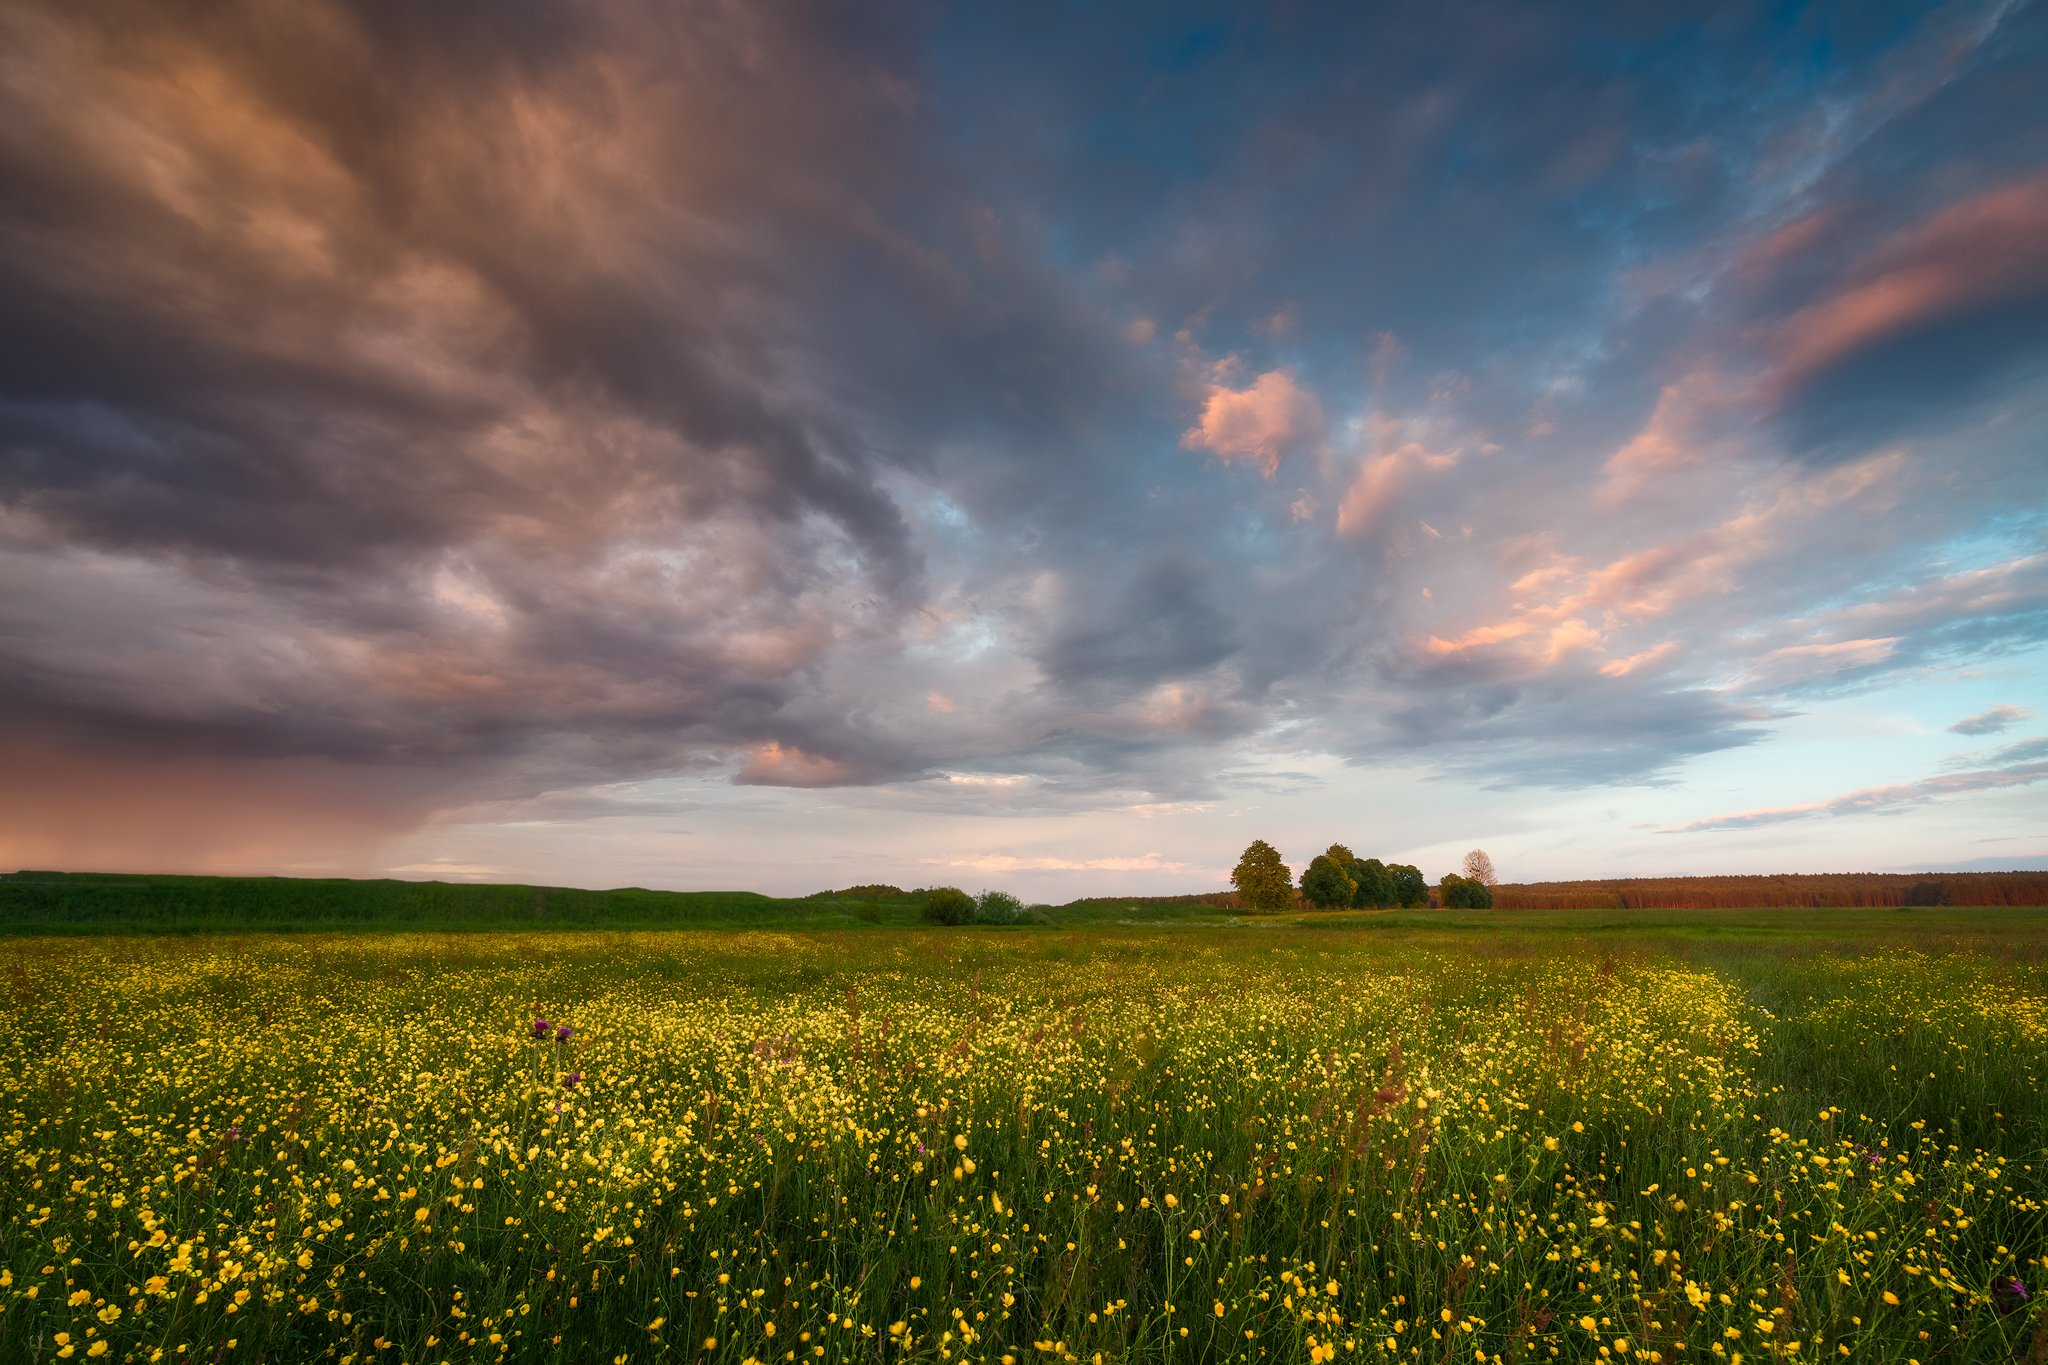 buttercups wildflowers flowers sunset sky clouds colors mood poland podlasie, Maciej Warchoł